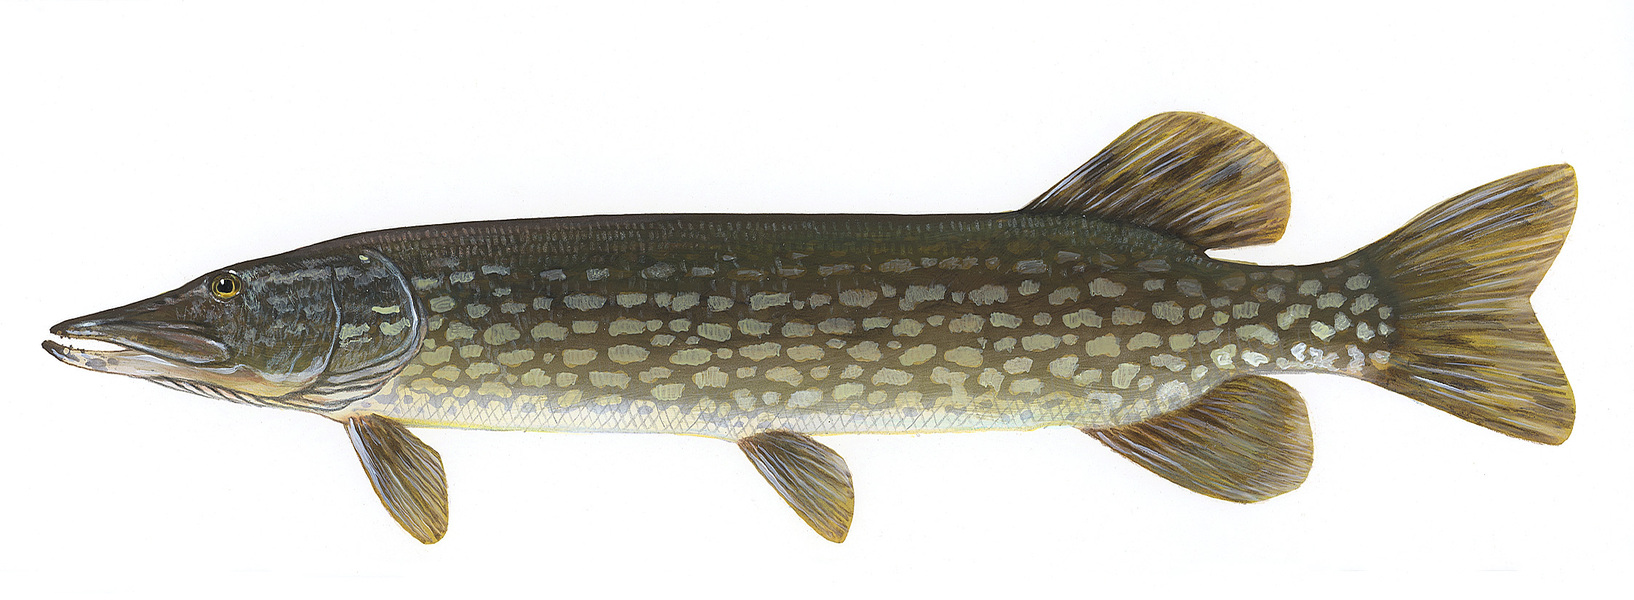 northernpike2